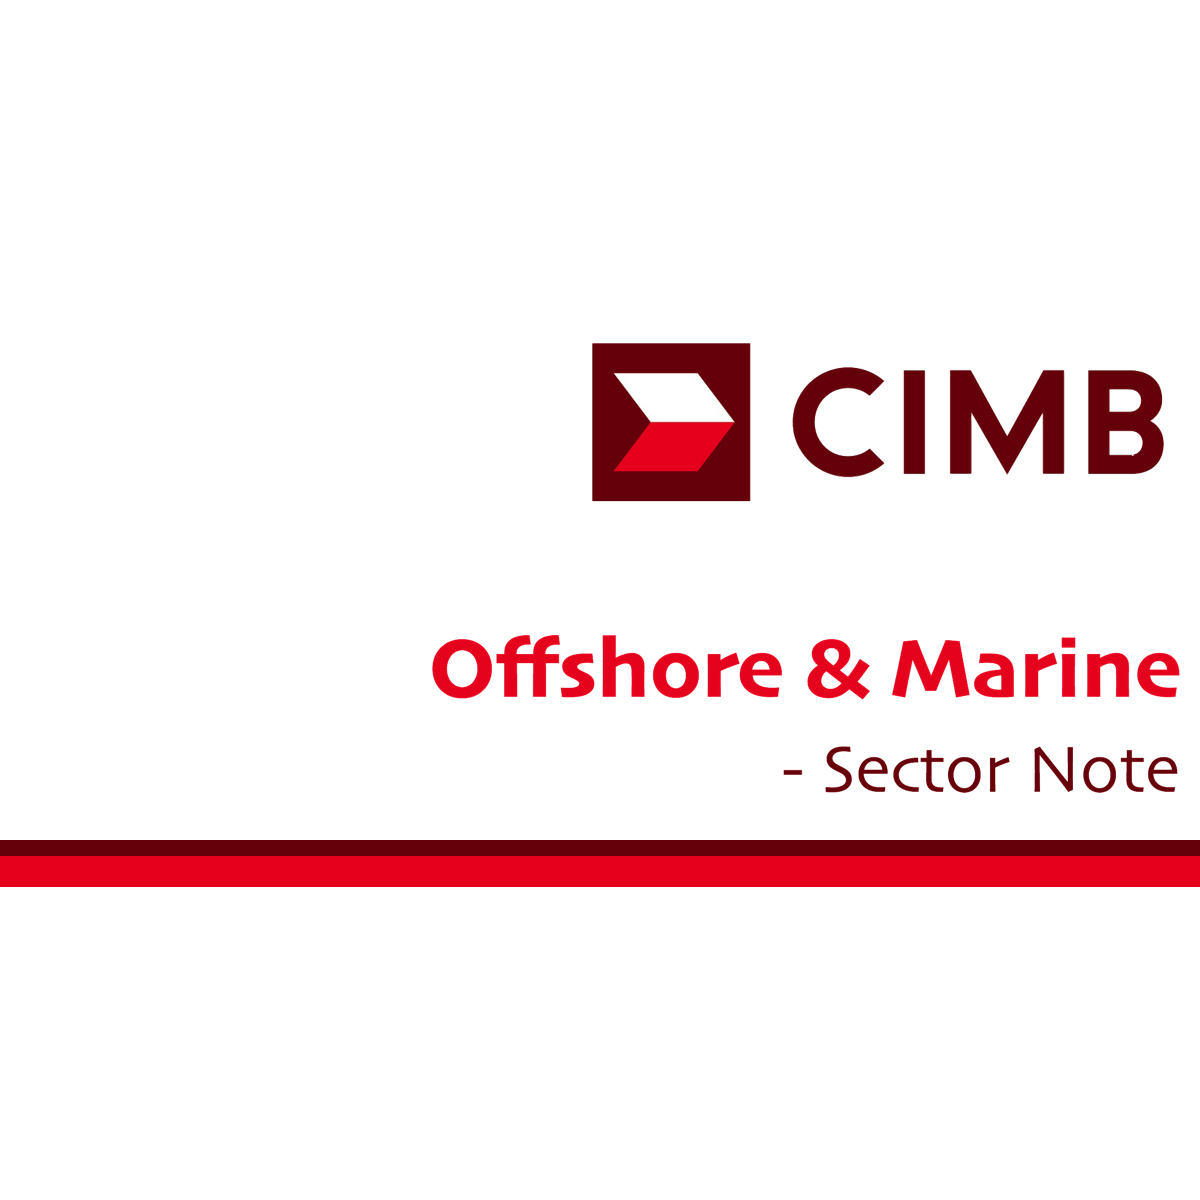 Offshore & Marine - CIMB Research 2016-12-05: Oil circular reference